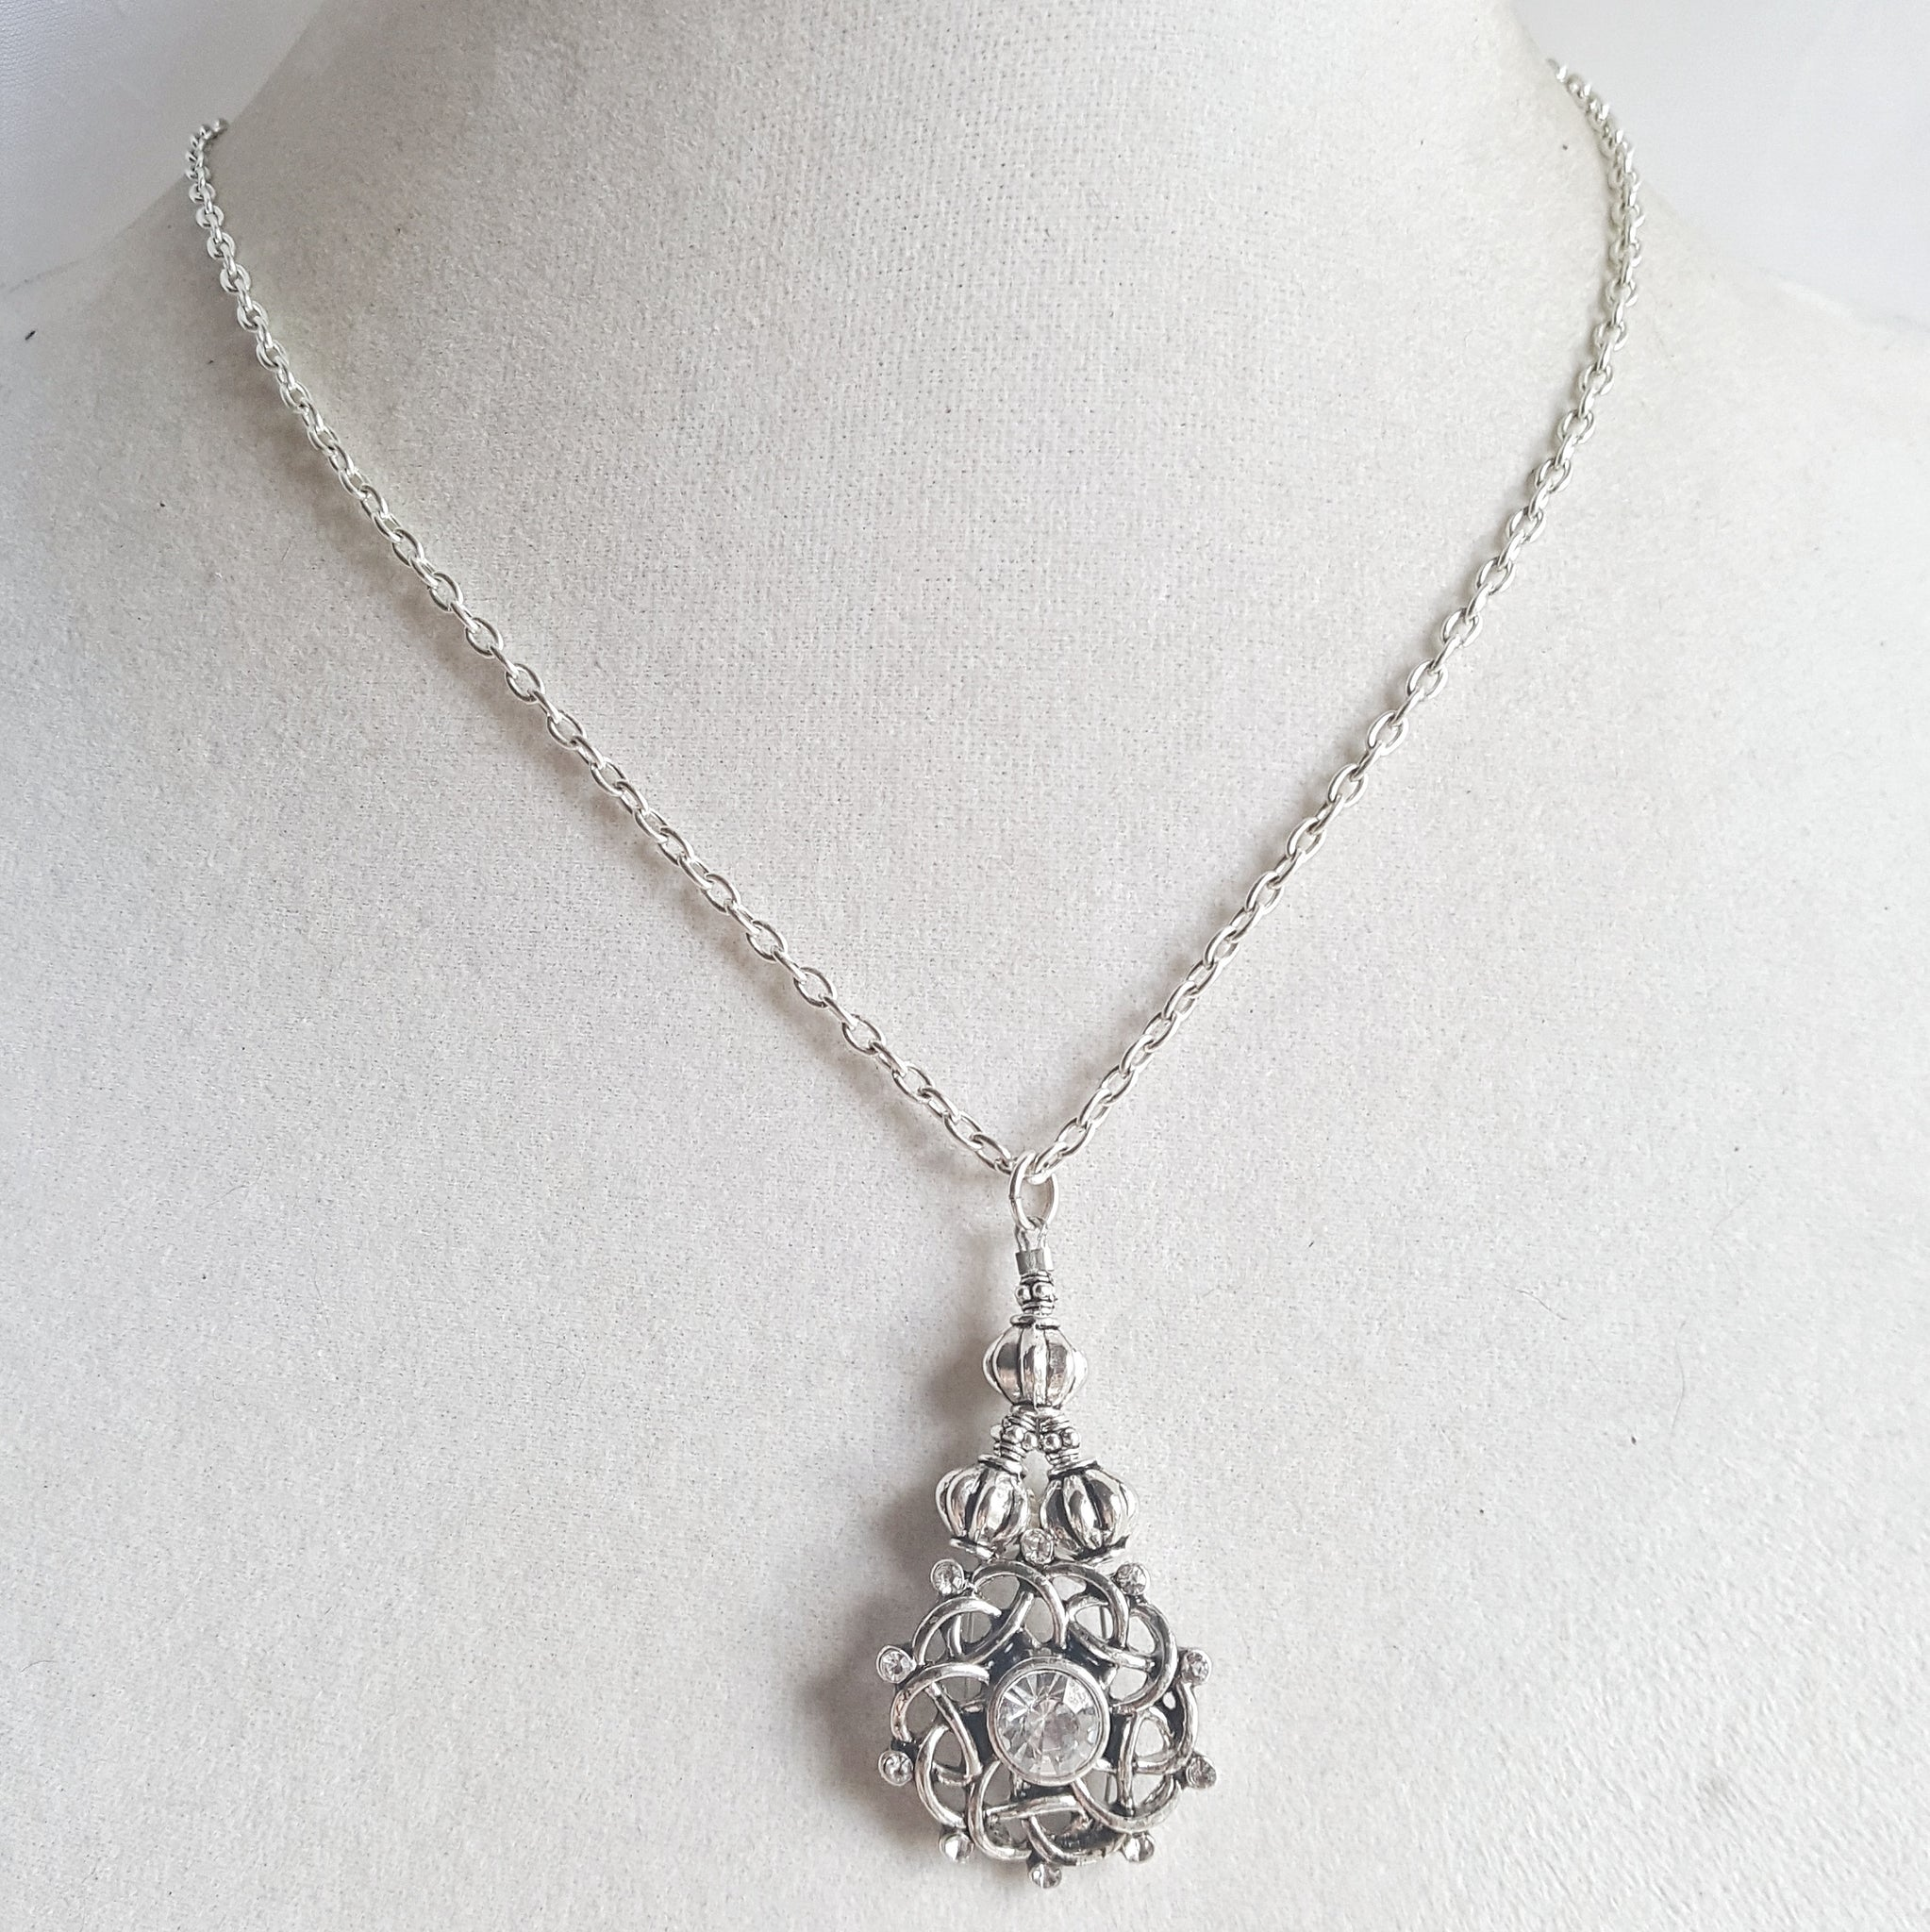 Silver Celtic Teardrop Pendant Necklace Rhinestone Bridal Fantasy Jewelry - DRAVYNMOOR